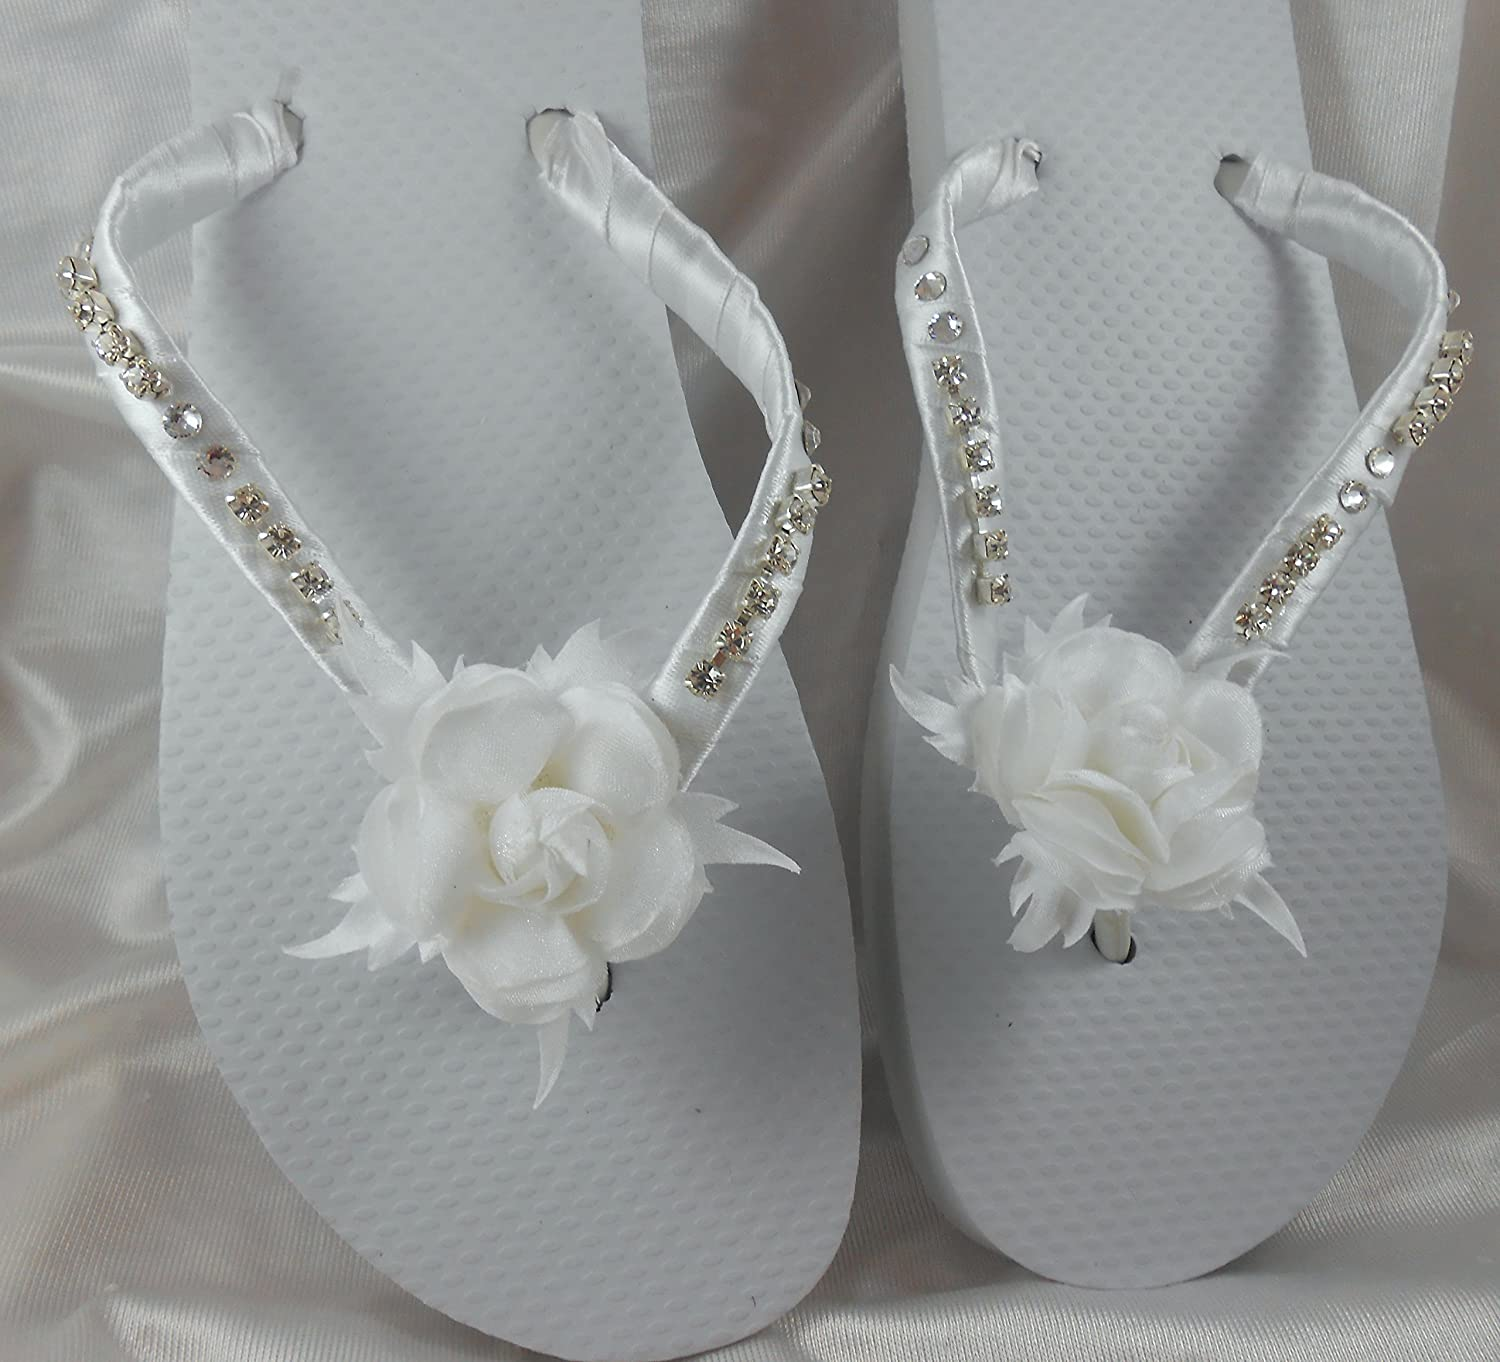 a0d9a9763 Handmade Satin Flowers Wedding Flip flops Matching Headband with genuine Swarovski  crystals Havaianas Flip Flops for Bridal Flat Shoes Gift My unique Design